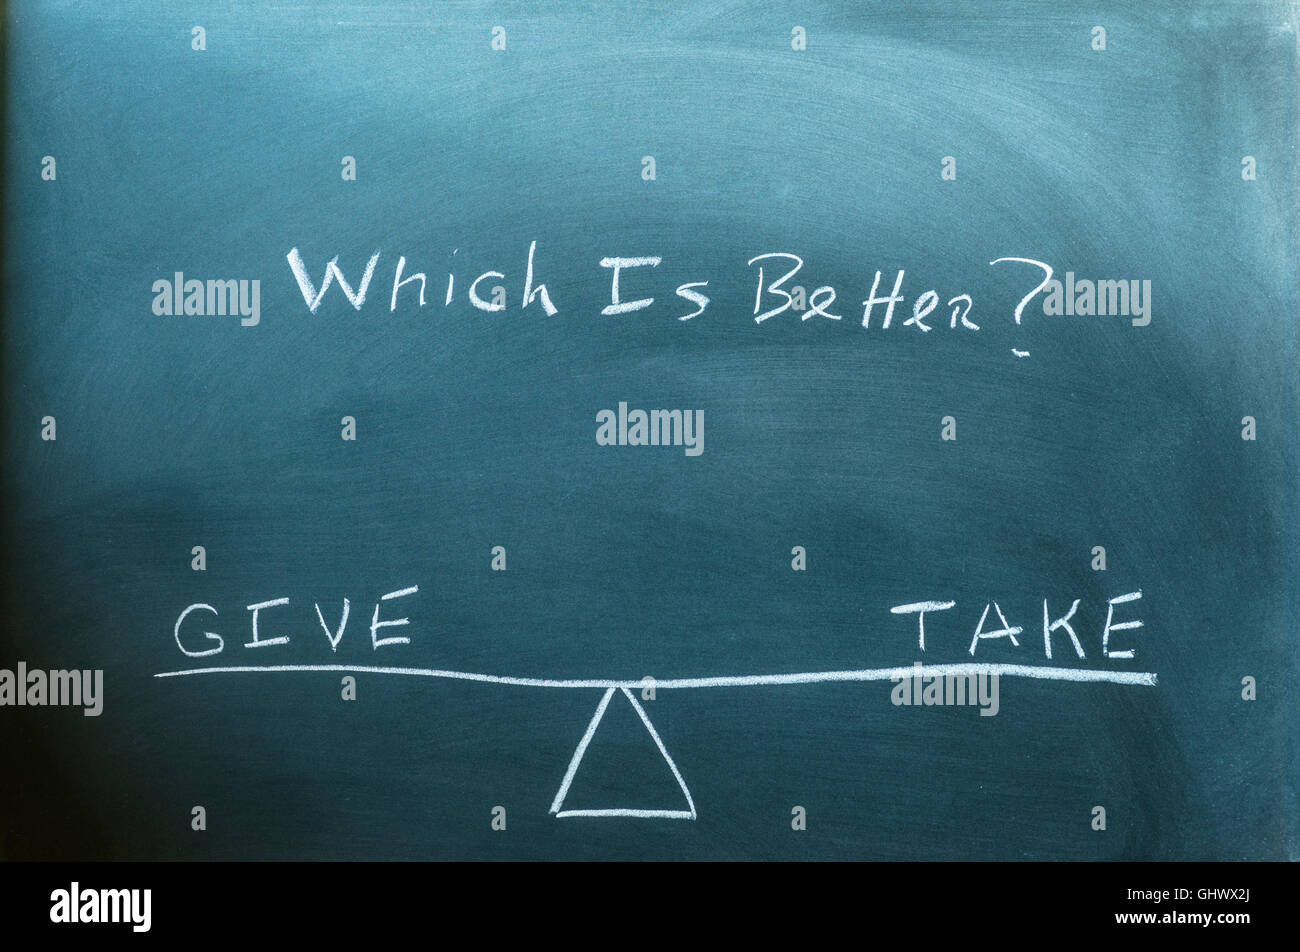 the words give and take on a scale in equilibrium written on a chalkboard. - Stock Image